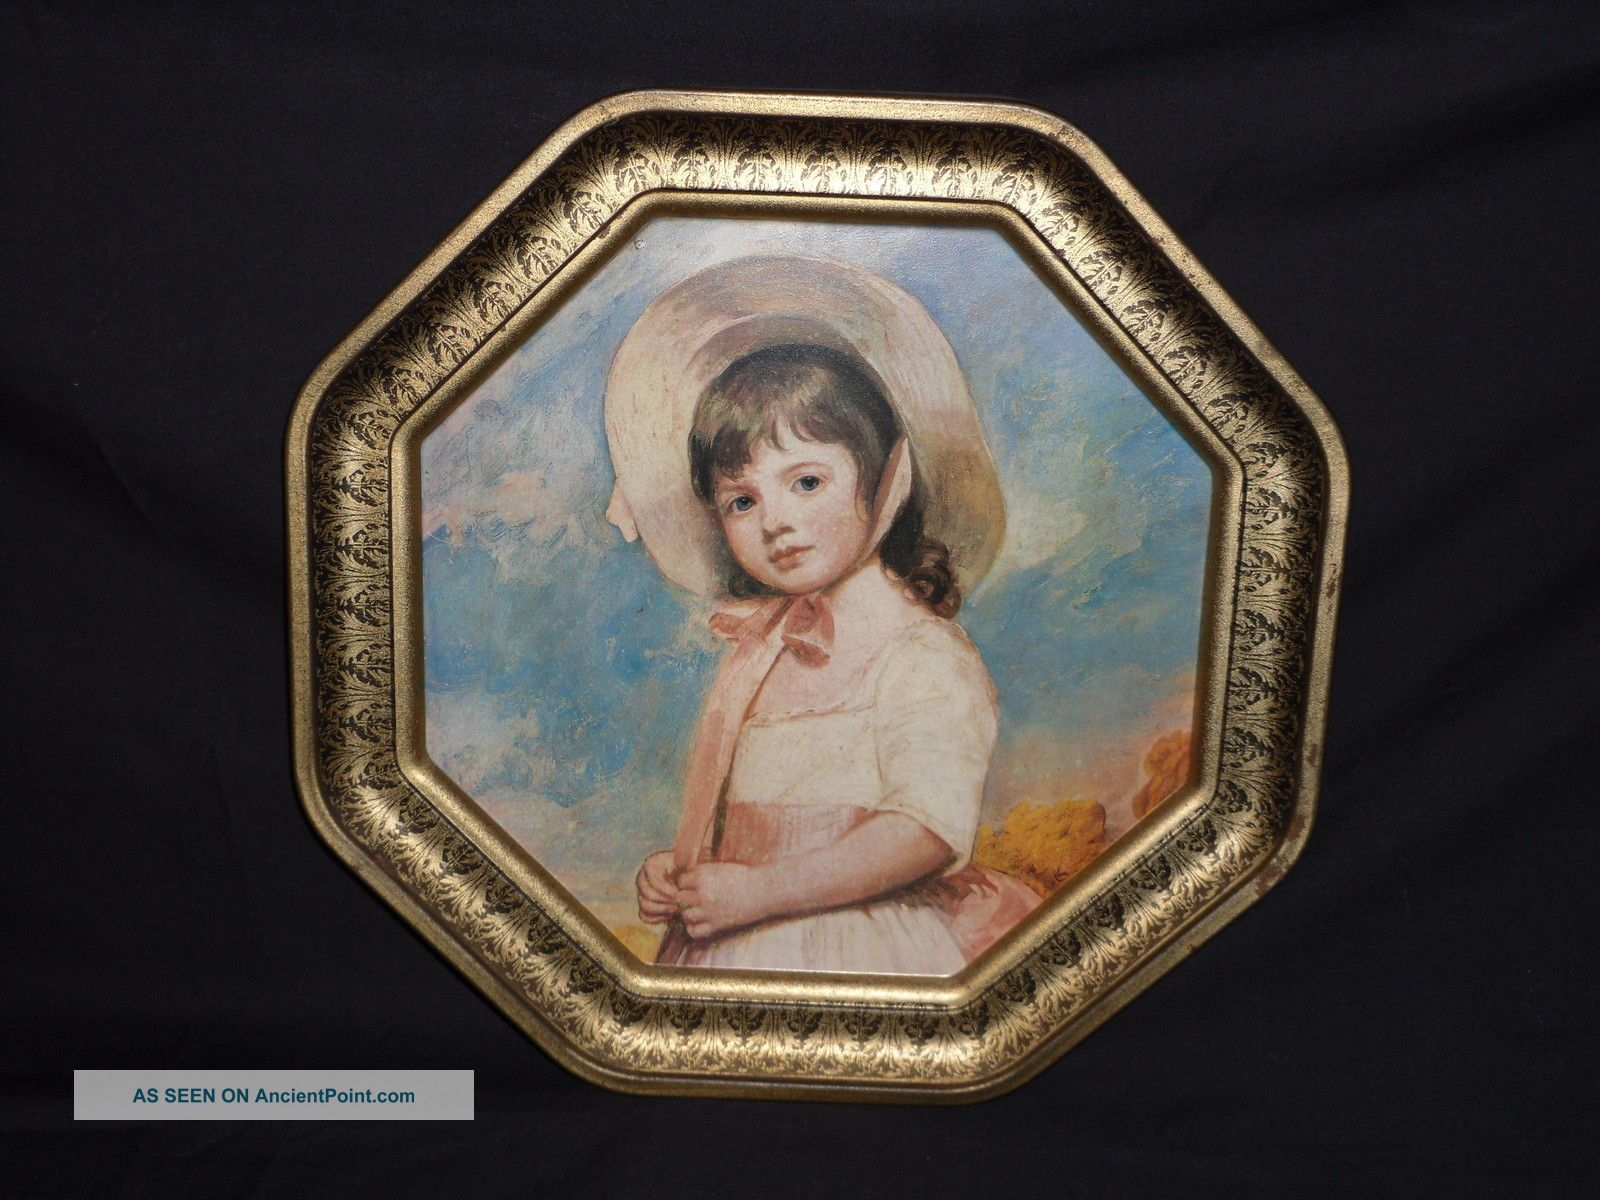 Antique Embossed Picture Of Little Girl Peach Dress On Metal Wall Hanging Metalware photo